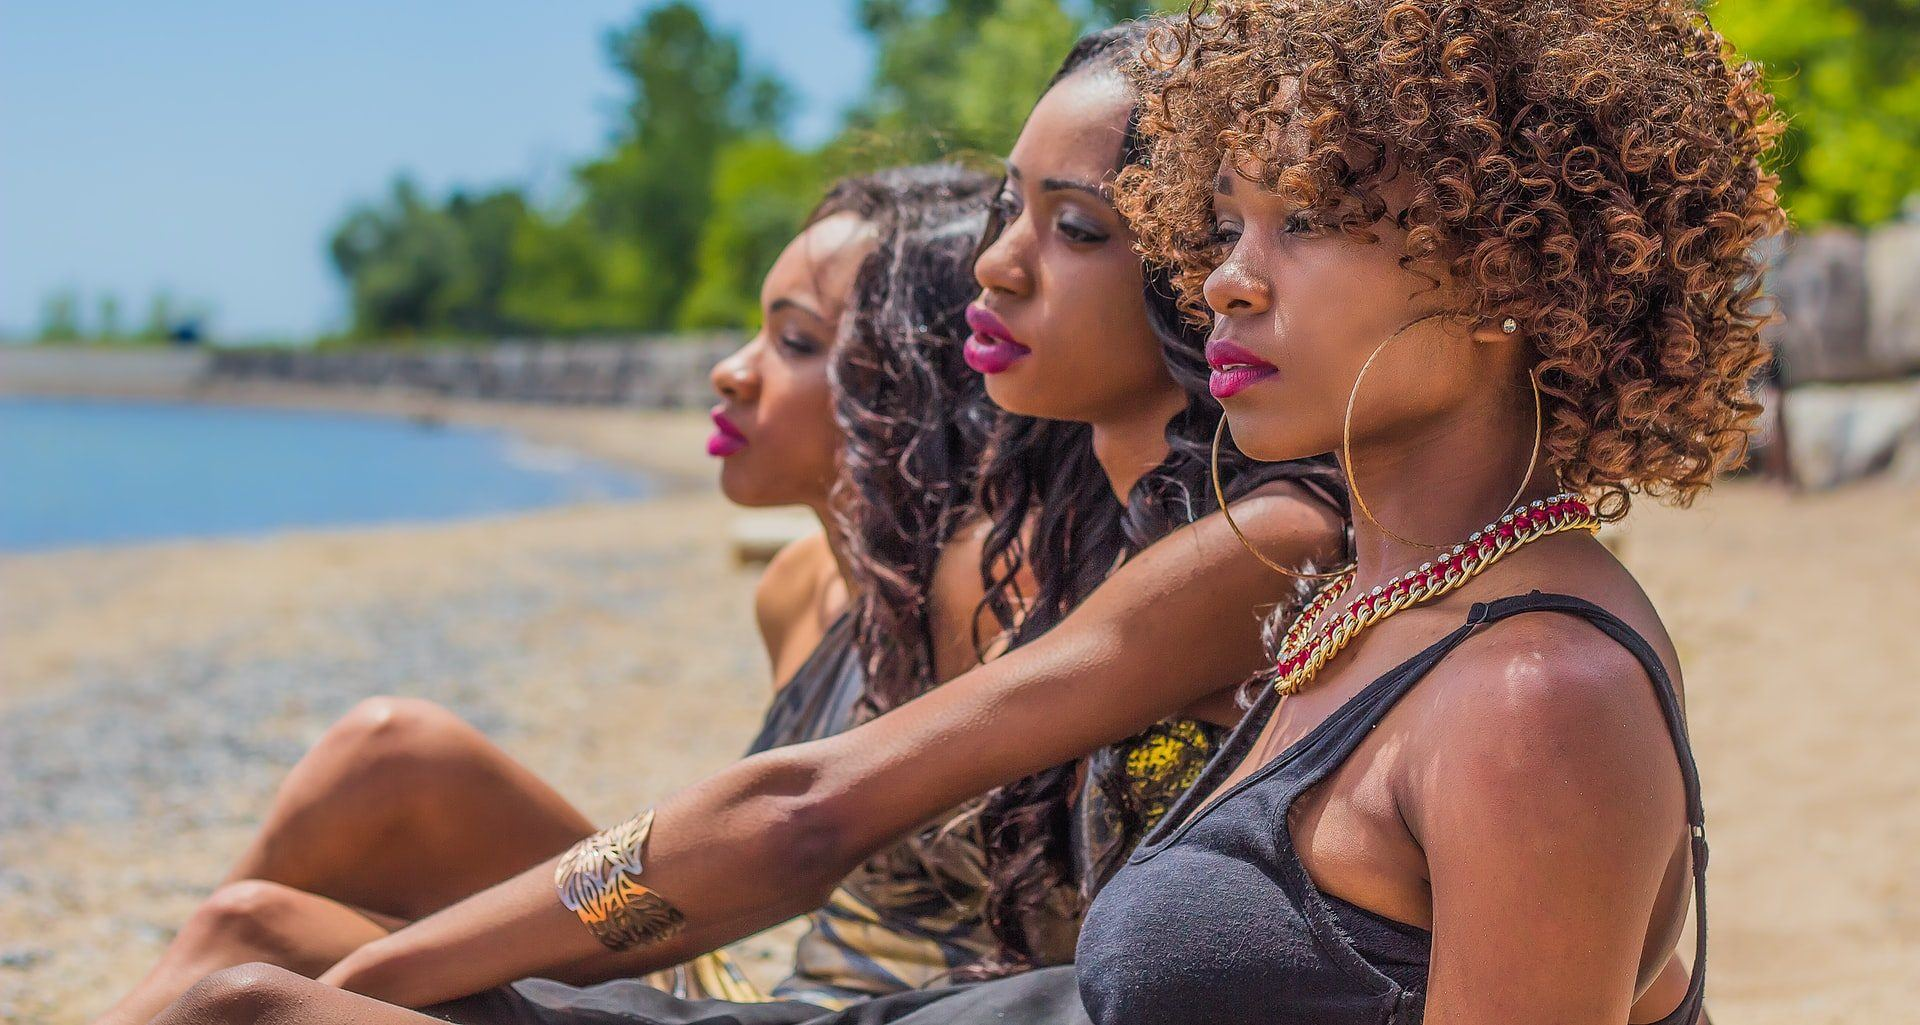 Wukina: South Africa's First Hair Networking Company